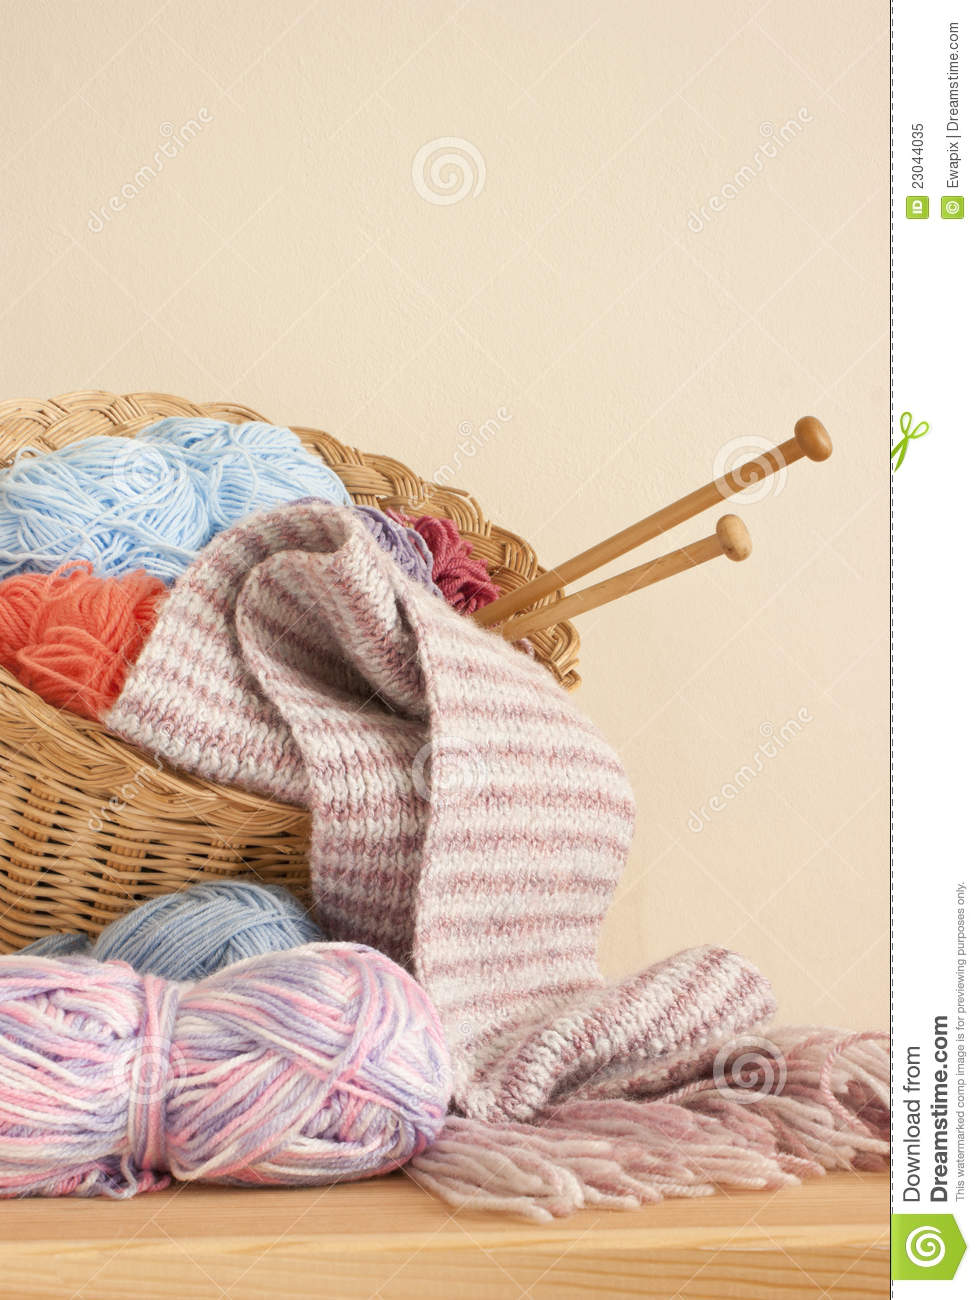 Knitting Needles On The Knitted Background Stock ...